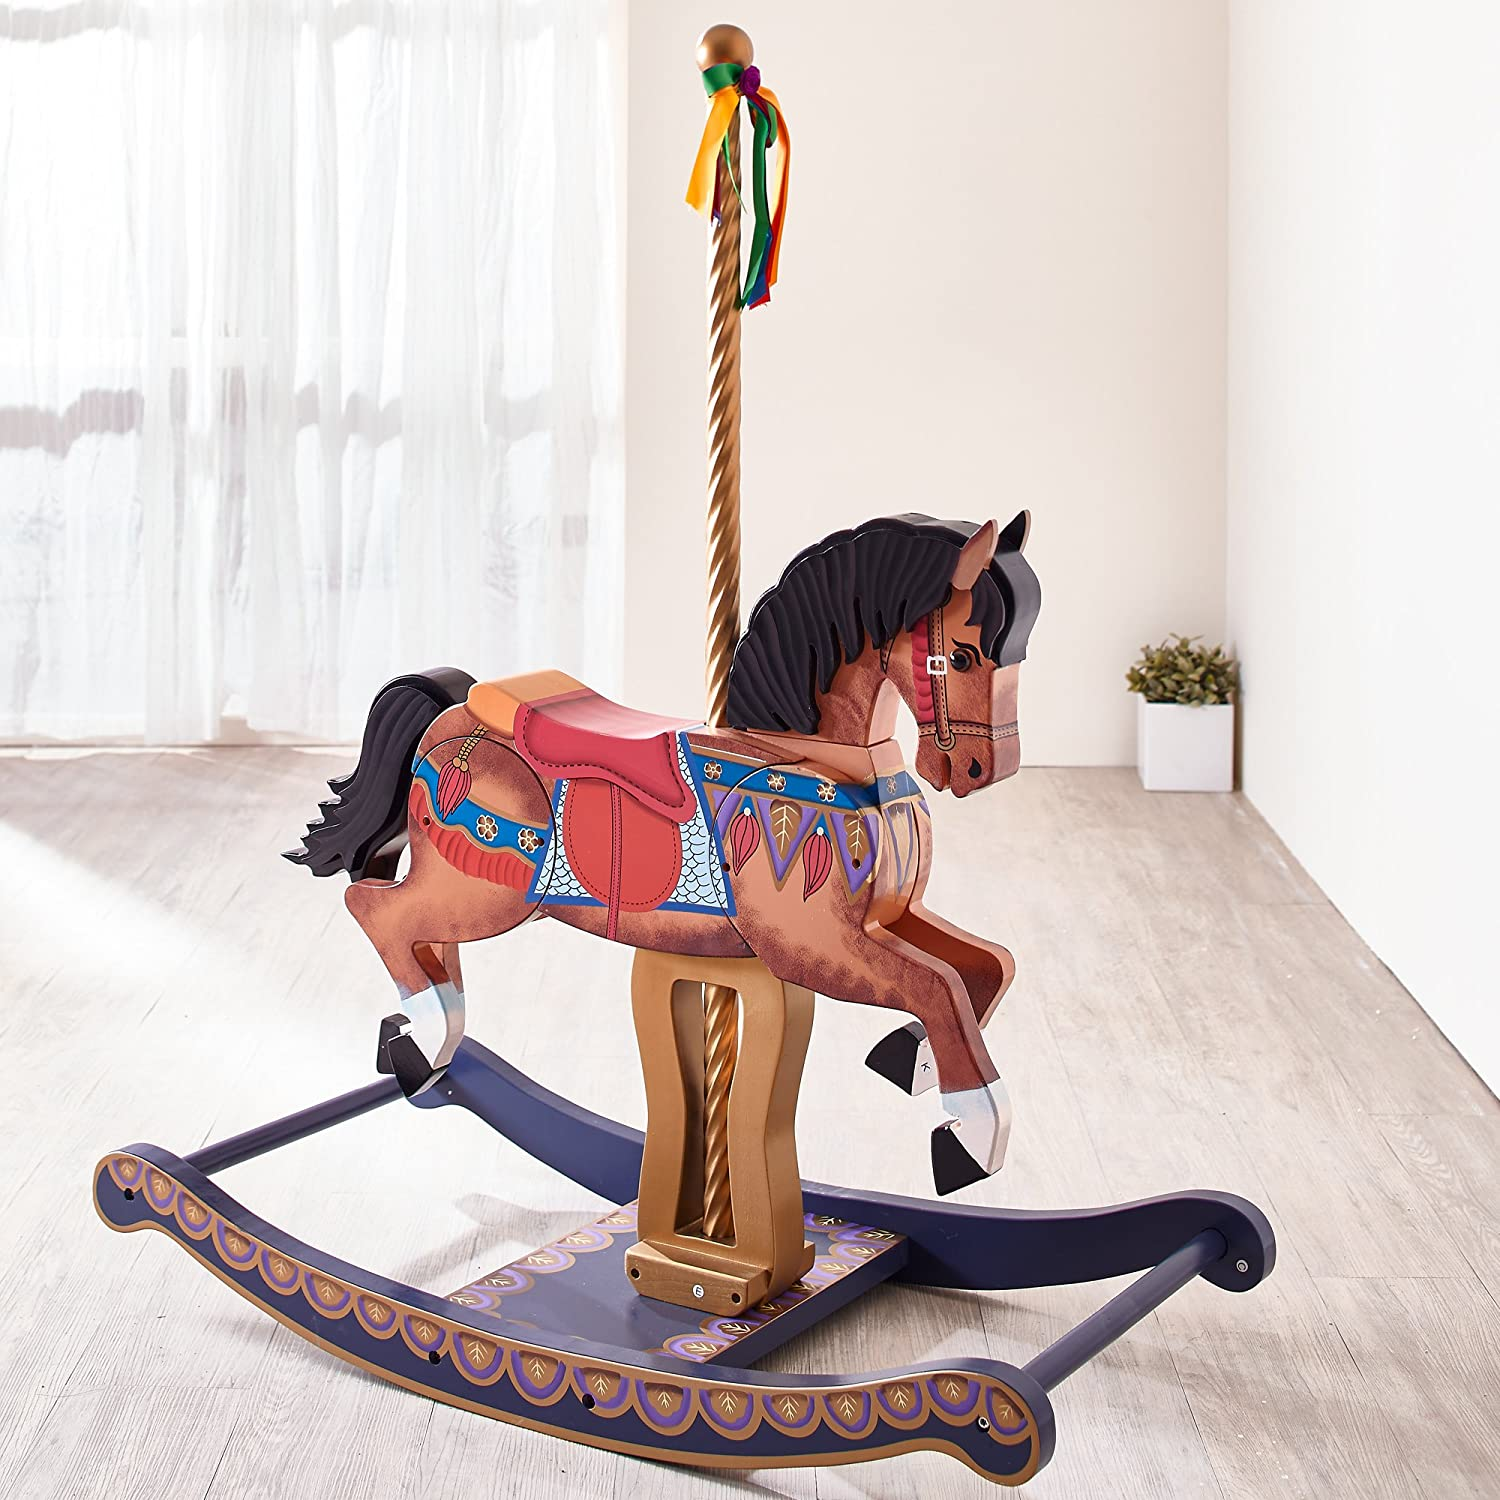 teamson kids  carousel style hand painted wooden rocking horse  - teamson kids  carousel style hand painted wooden rocking horse for kidsamazoncouk baby